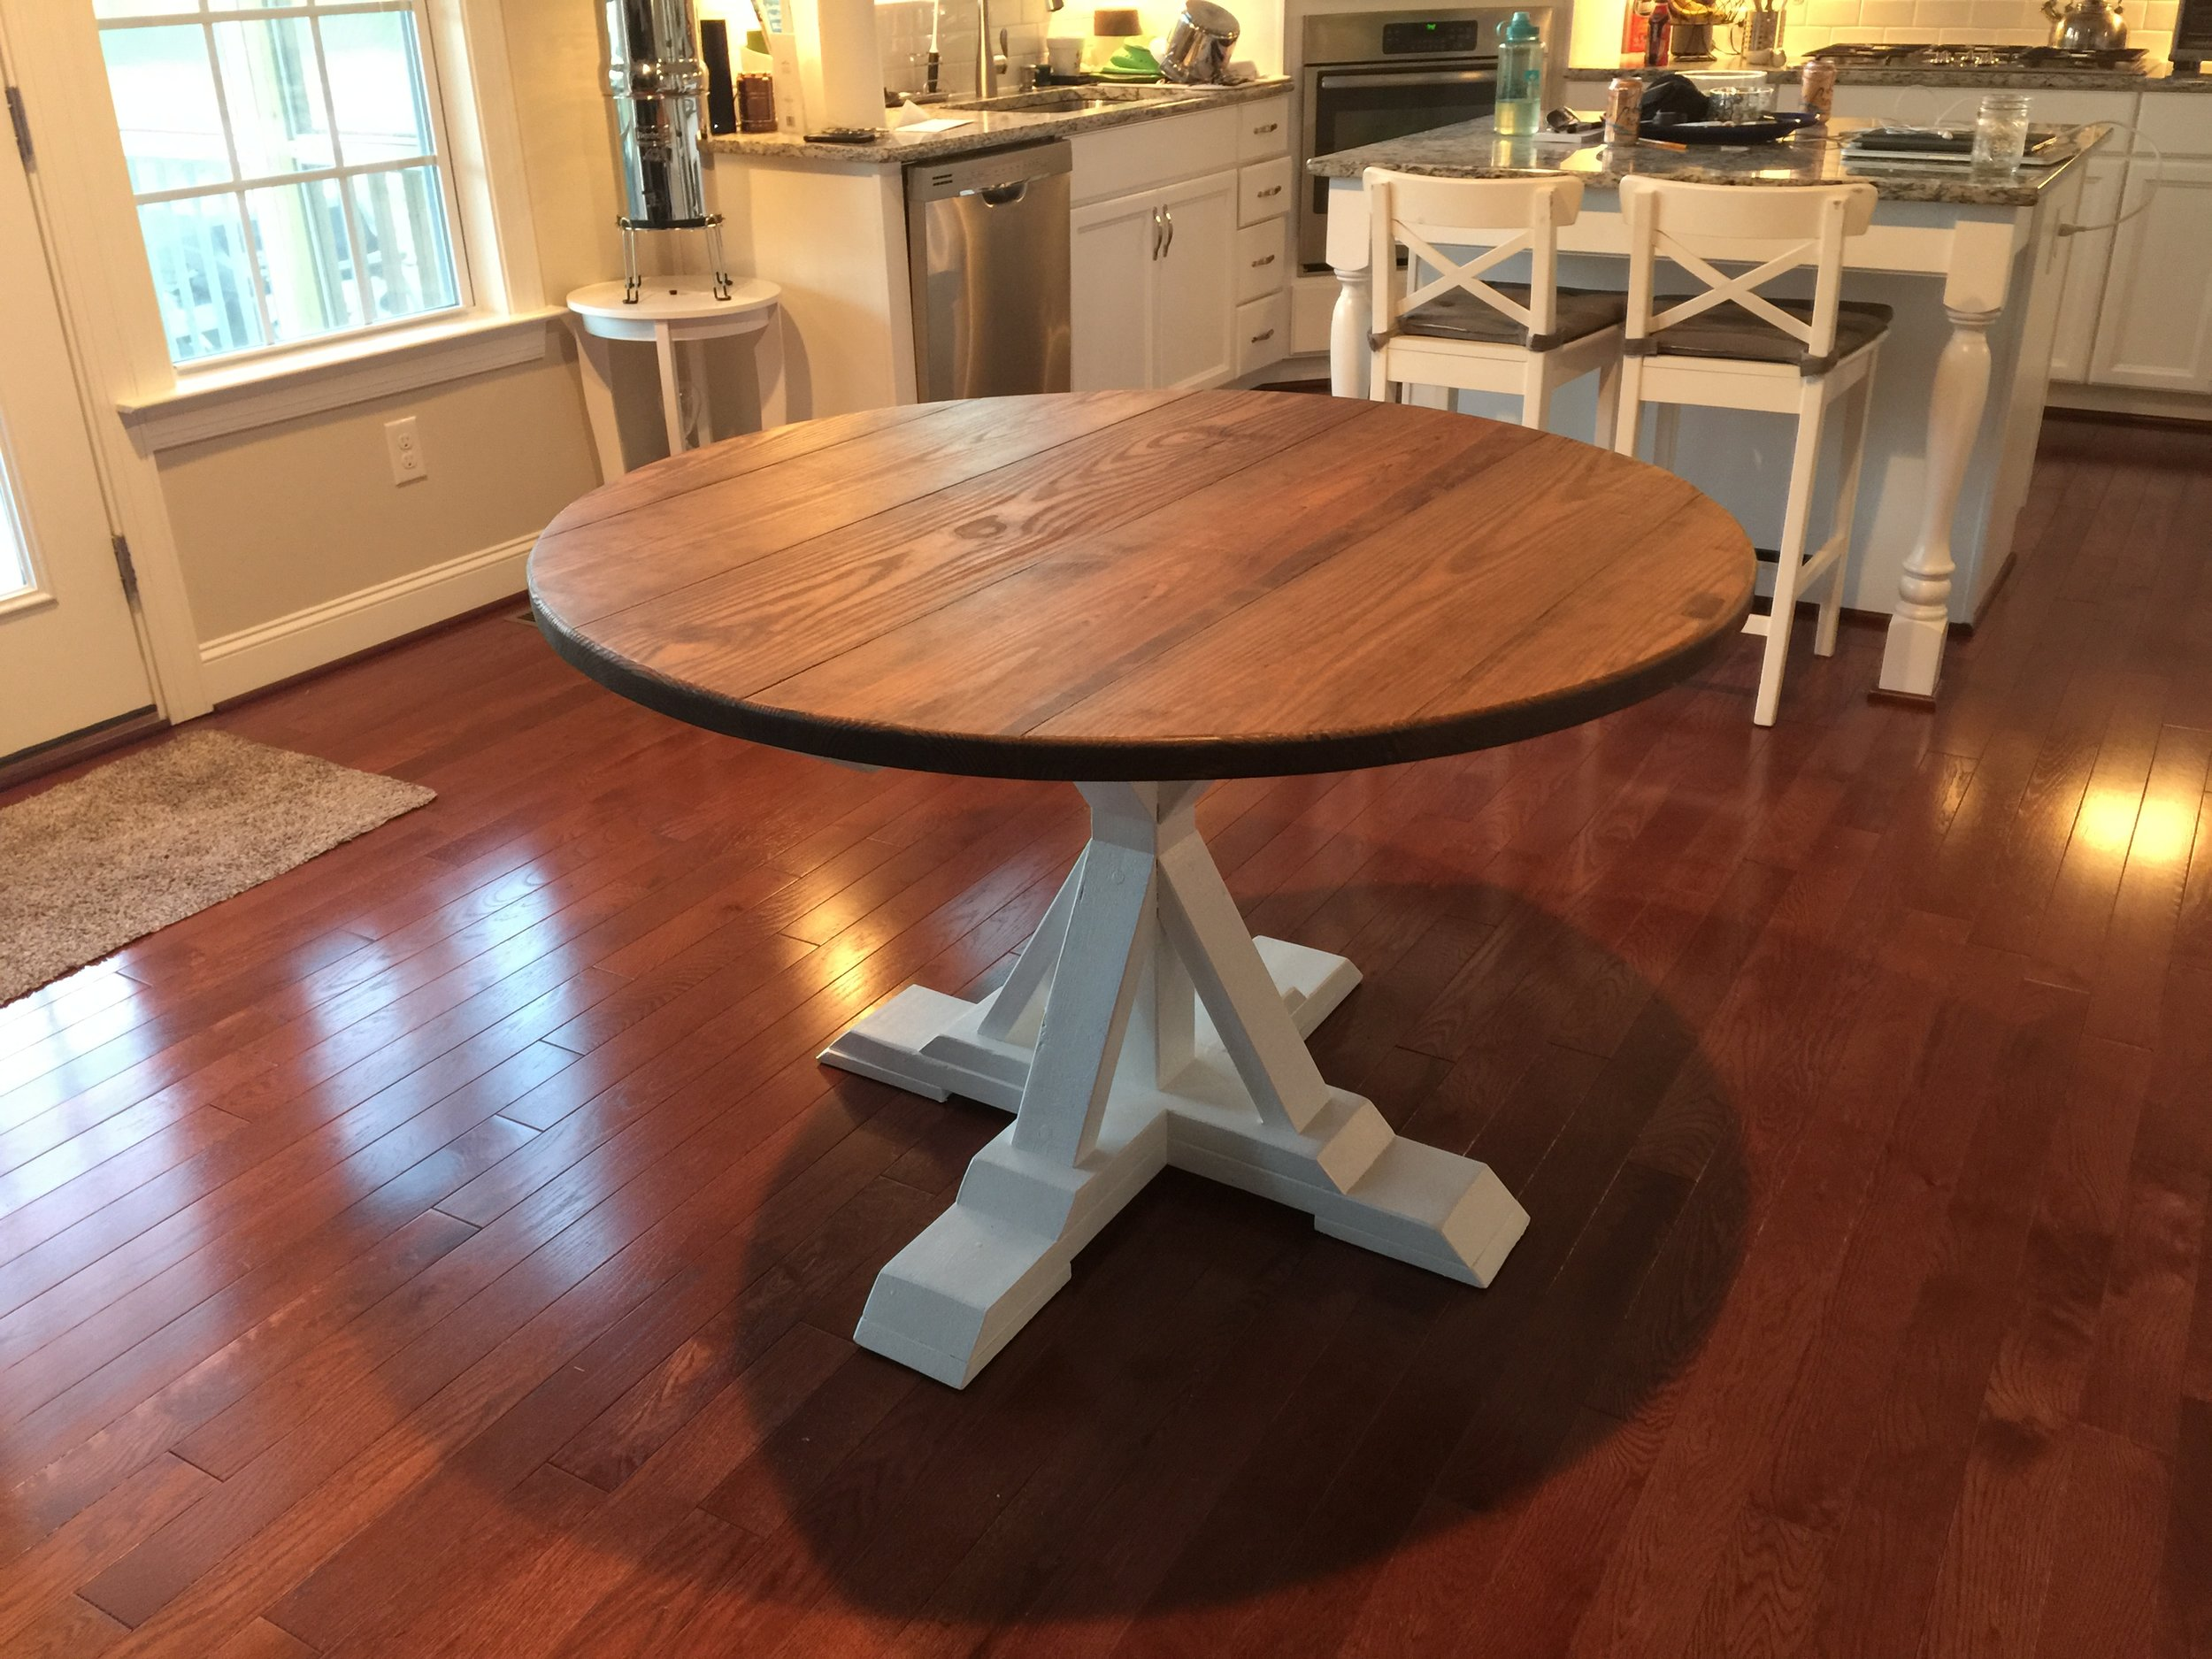 Various levels of distressing are based on customer's choice and included in the price of the tables.